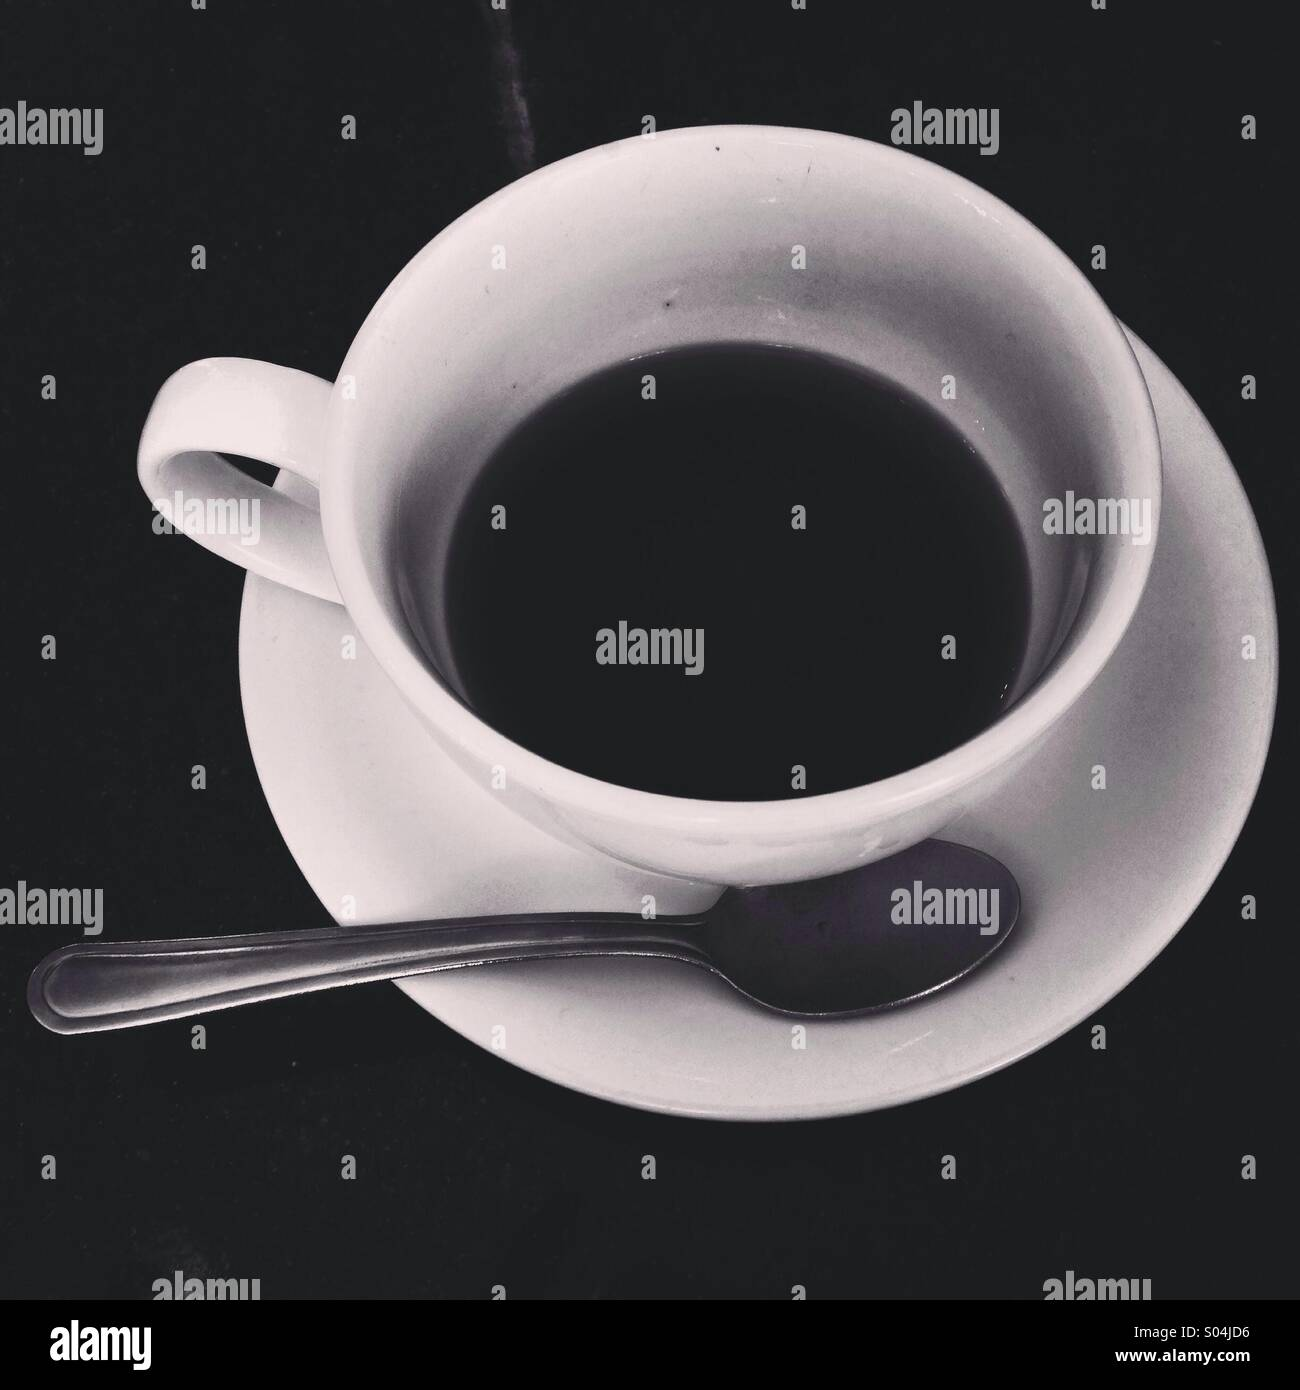 A cup and saucer of coffee half full with a spoon - Stock Image